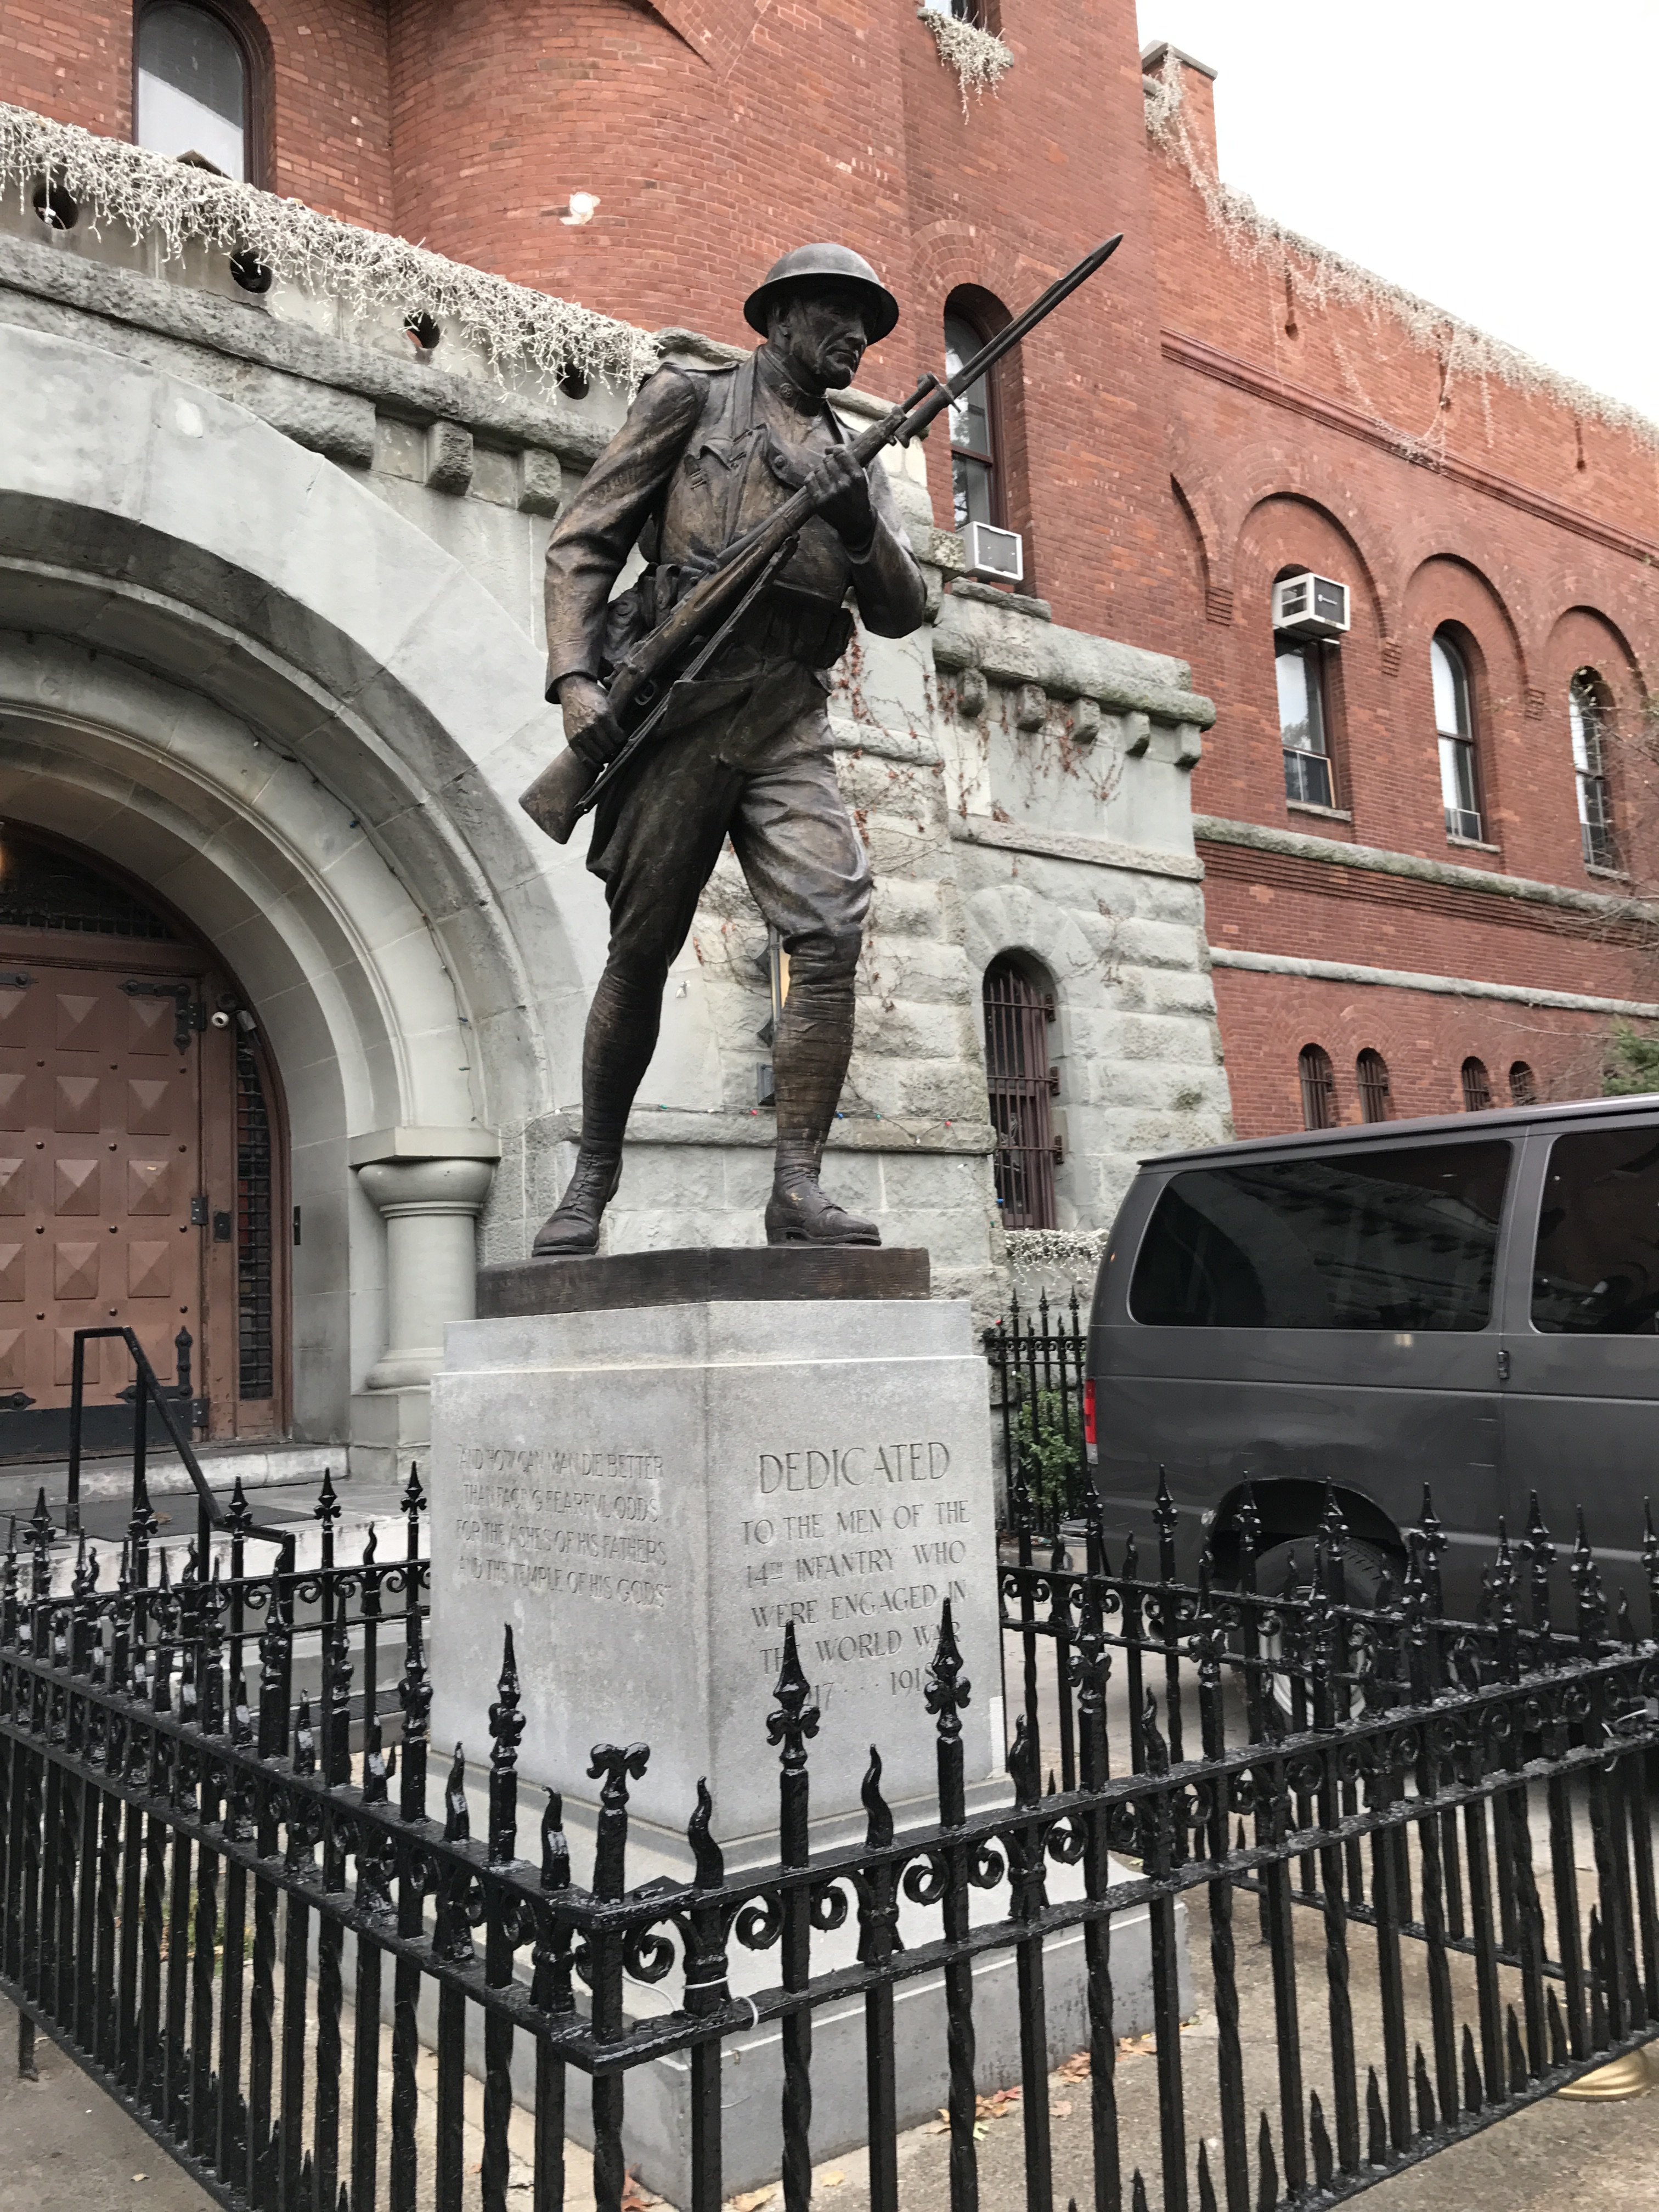 Left side of statue- on 8th Avenue side of building